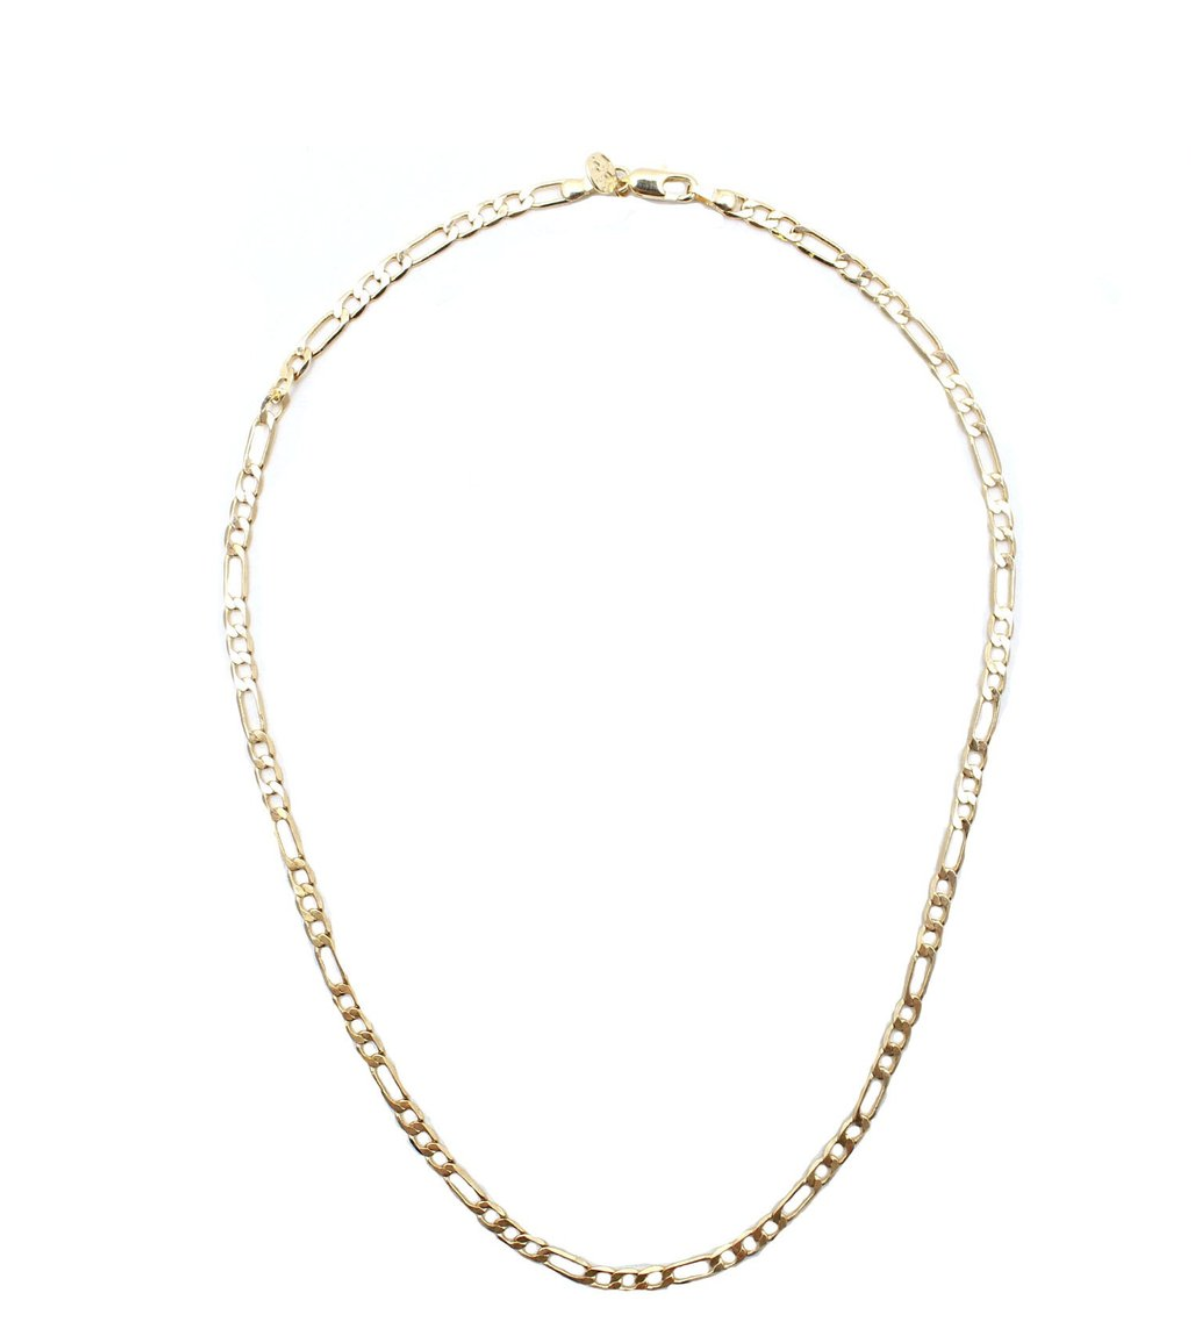 Gold ChaiN - This goes with literally everything. Get this 18K Gold Plated Chain from Child of Wild for $58.